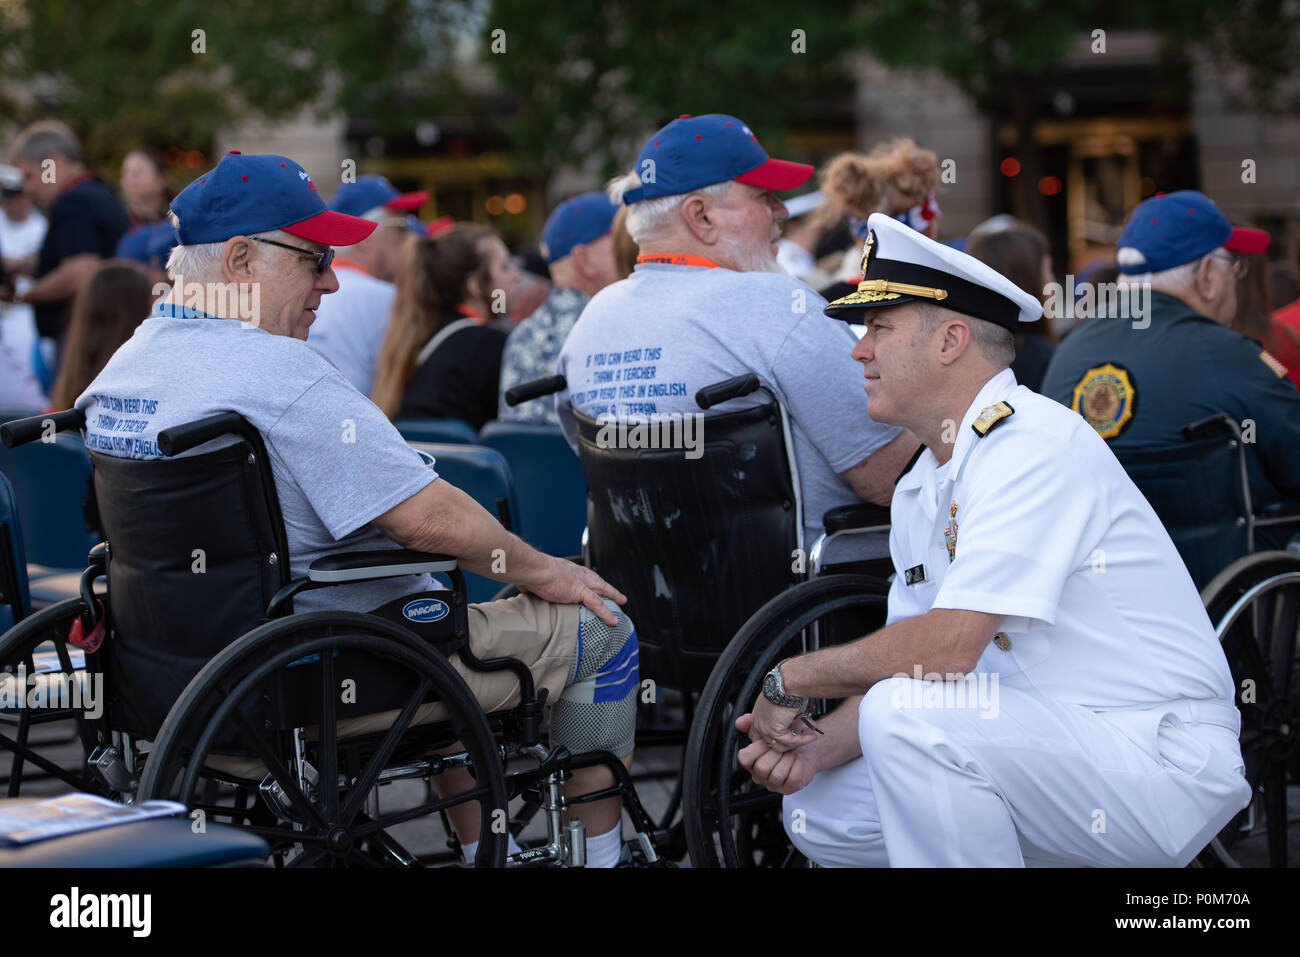 180605-N-HG258-1018 WASHINGTON (June 5, 2018) Rear Adm. Ronald Boxall meets with members of an Honor Flight from Kansas at the U.S. Navy Memorial in Washington, D.C., before the commemoration of the 76th anniversary of the Battle of Midway. The Battle of Midway began on June 4 in 1942 and stands as one of the U.S. Navy's most historically significant naval battles. Fought on the high seas of the Pacific more than half a century ago, this battle altered the course of the war in the Pacific and thereby shaped the outcome of world events. (U.S. Navy photo by Senior Chief Musician Stephen Hassay/R - Stock Image